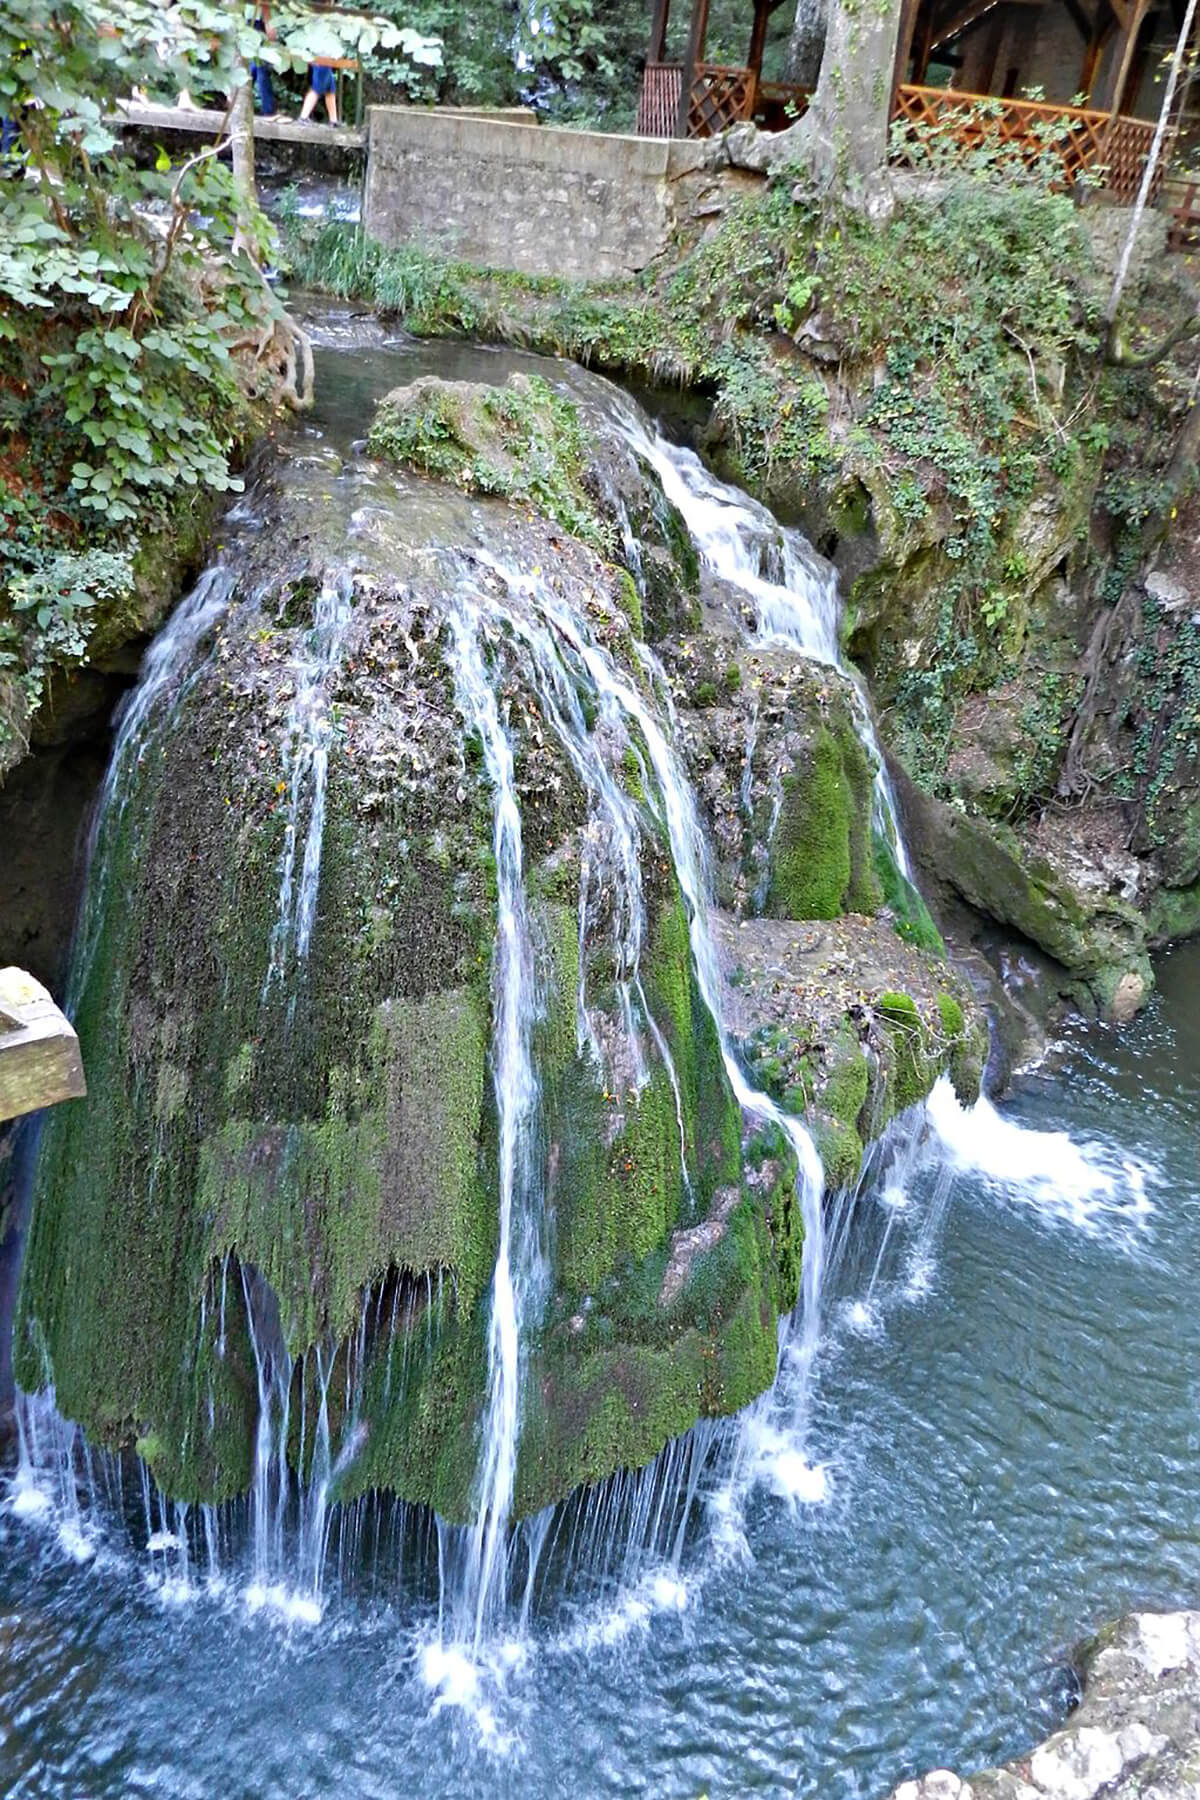 Bigar Waterfall in Romania is a little known destination but definitely worth visiting if nearby